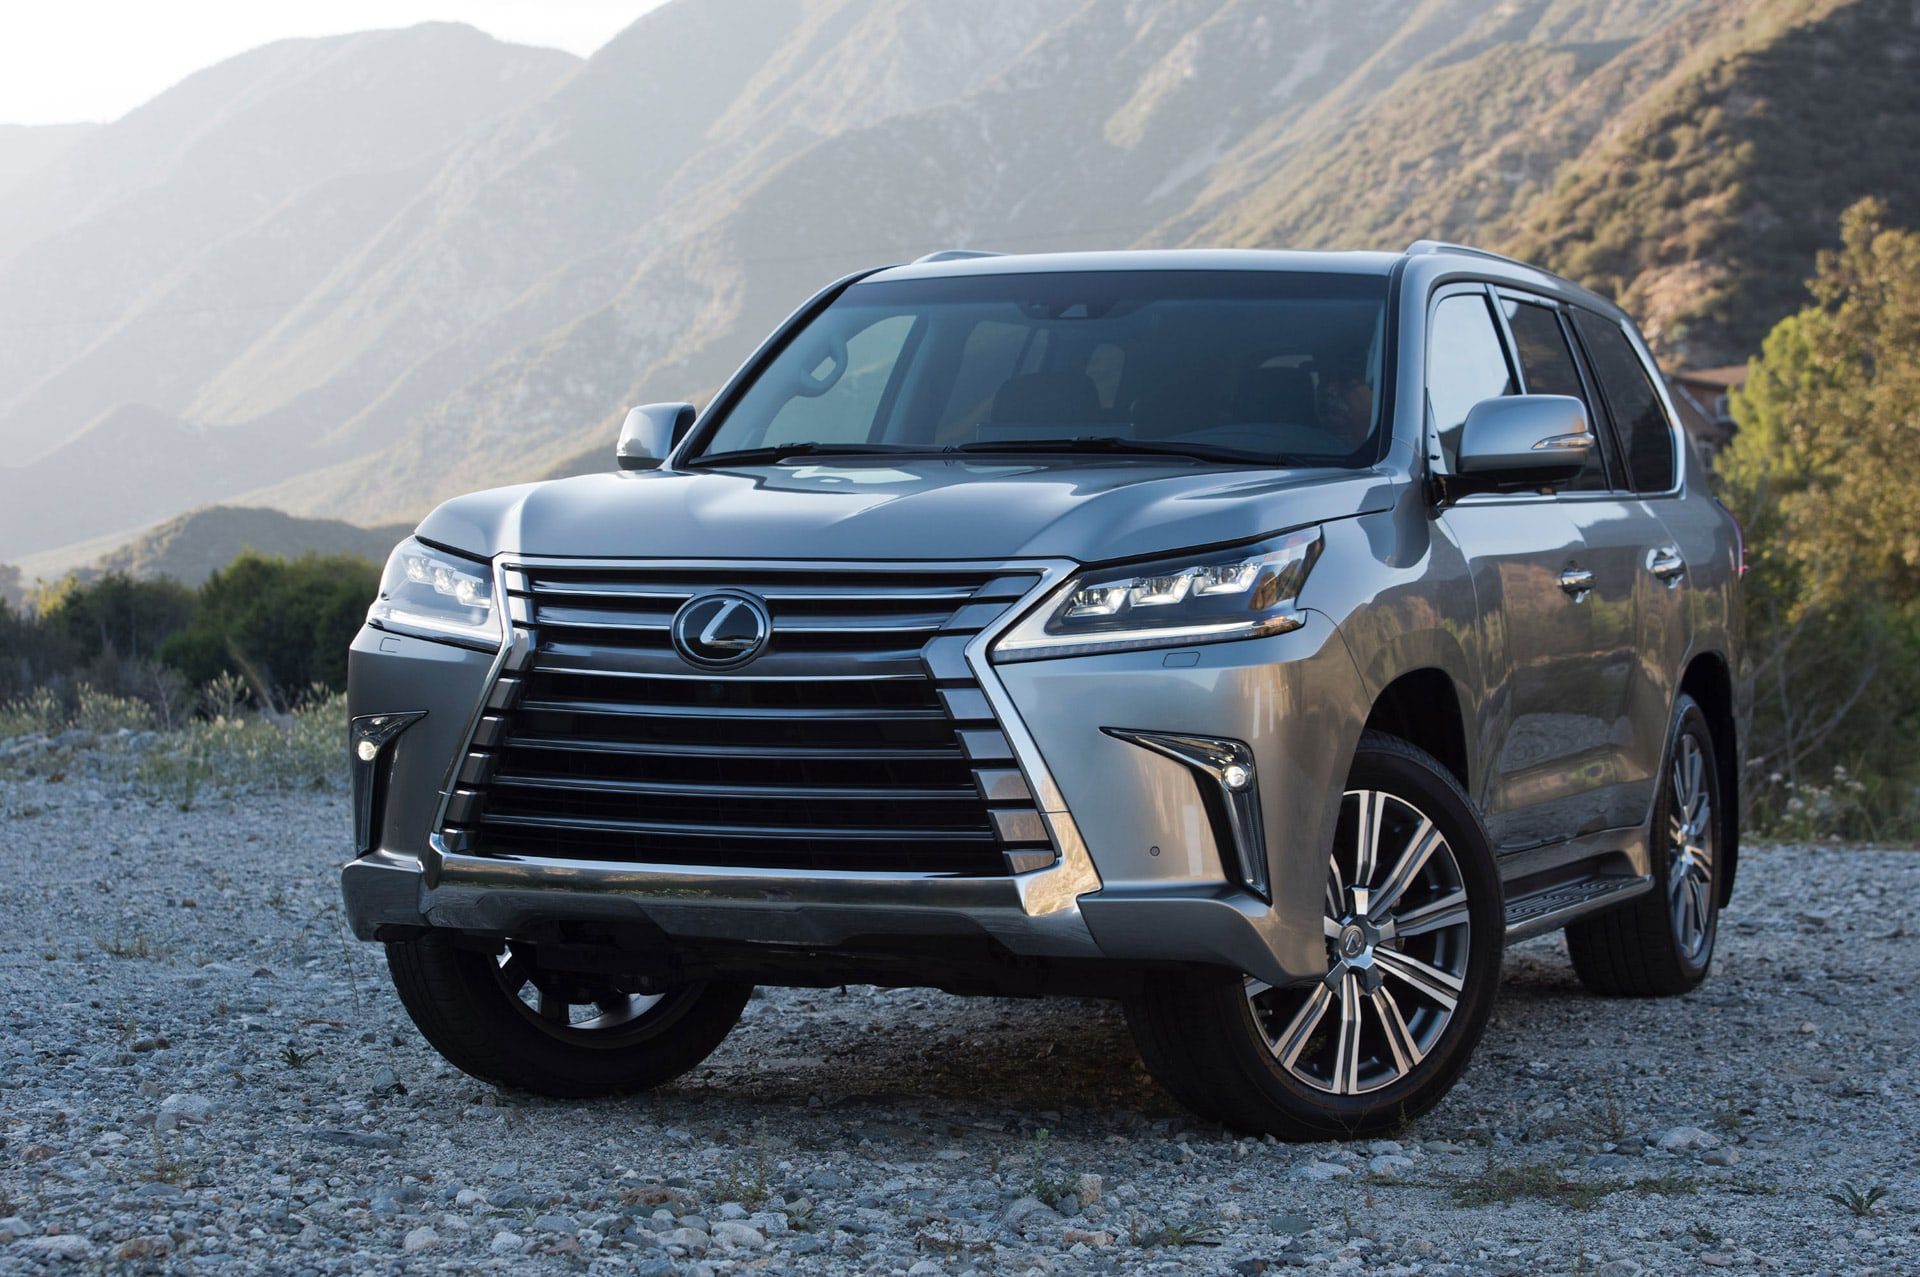 Lexus LX 570 FL Wallpapers